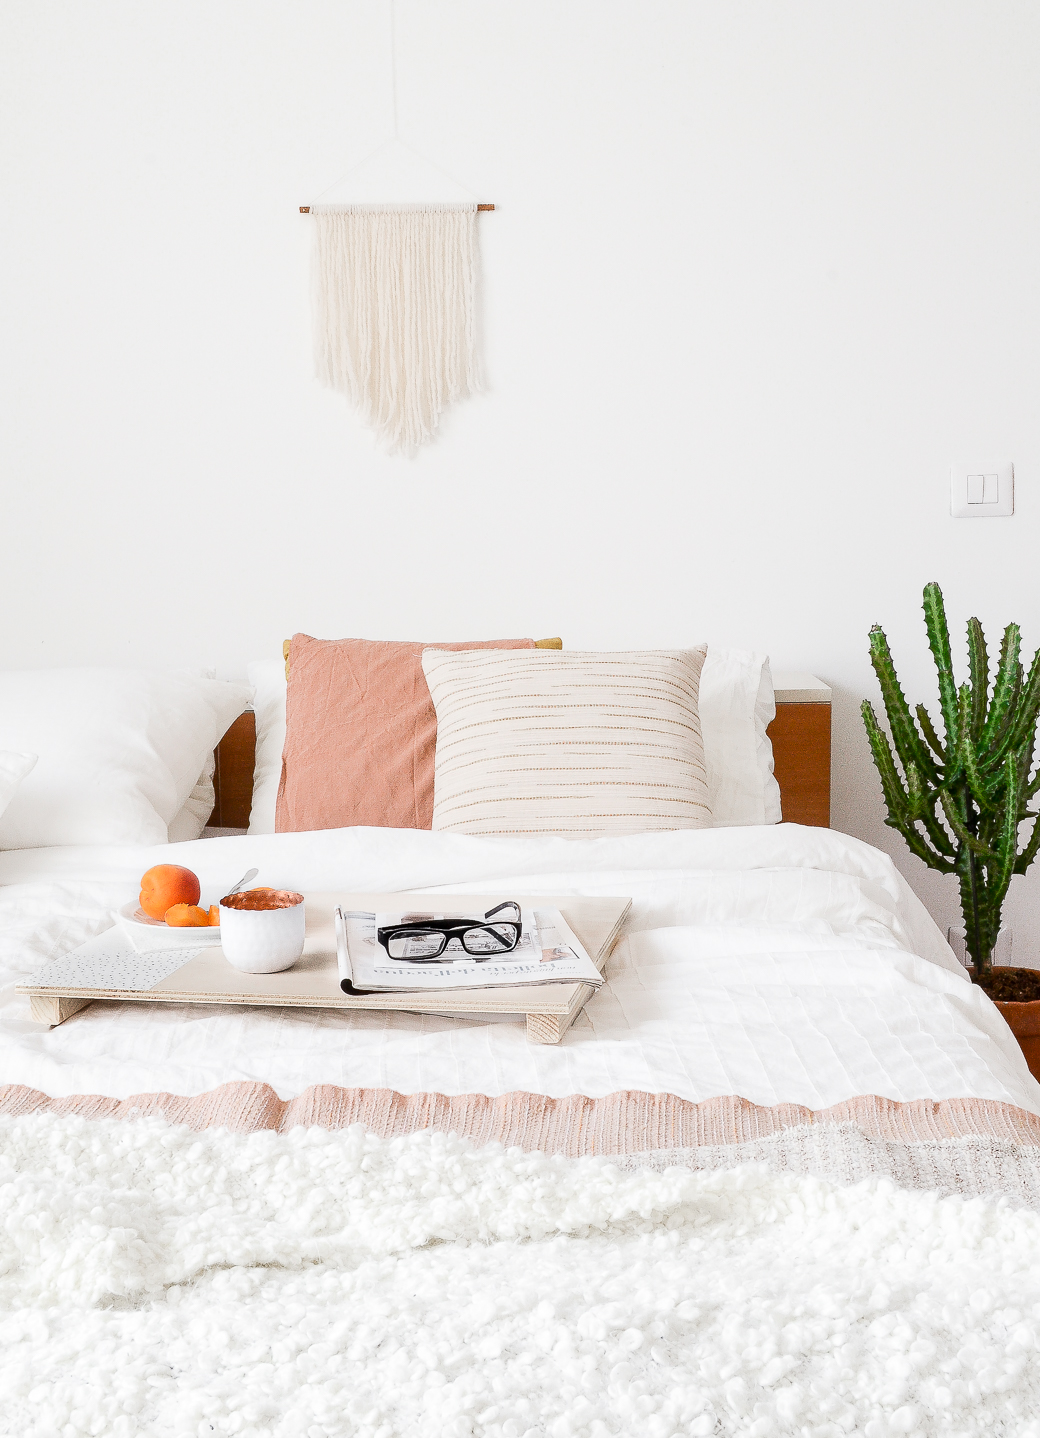 Bed-stand-decor8-1.jpg